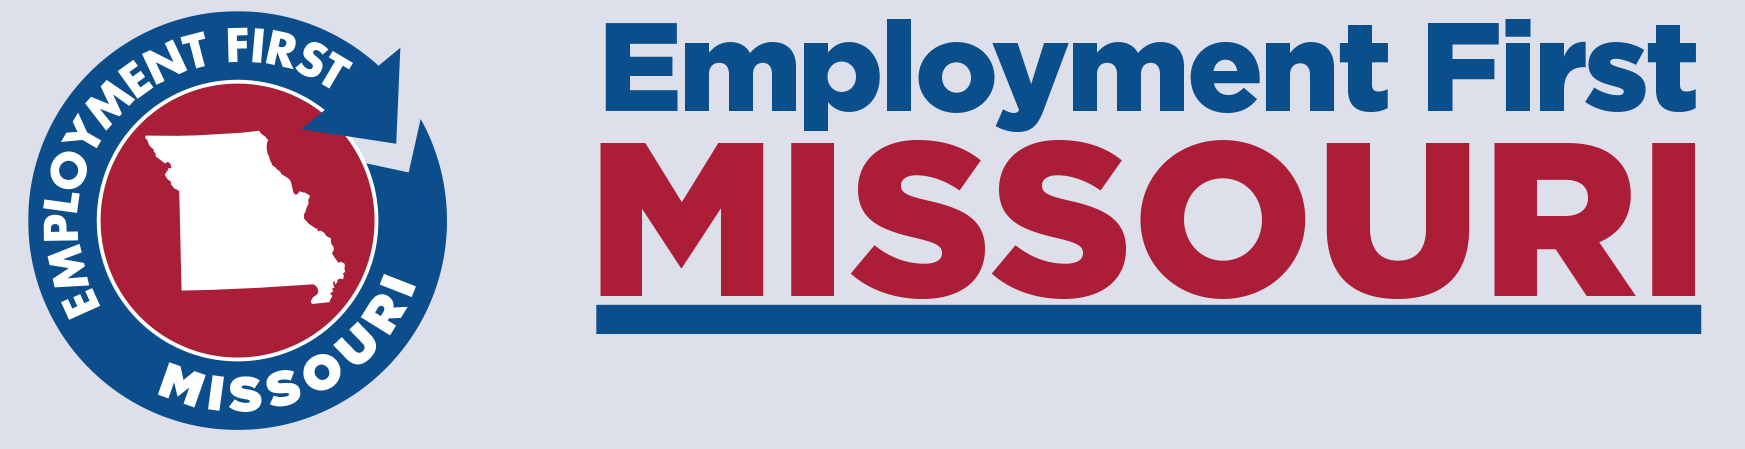 Employment First Missouri